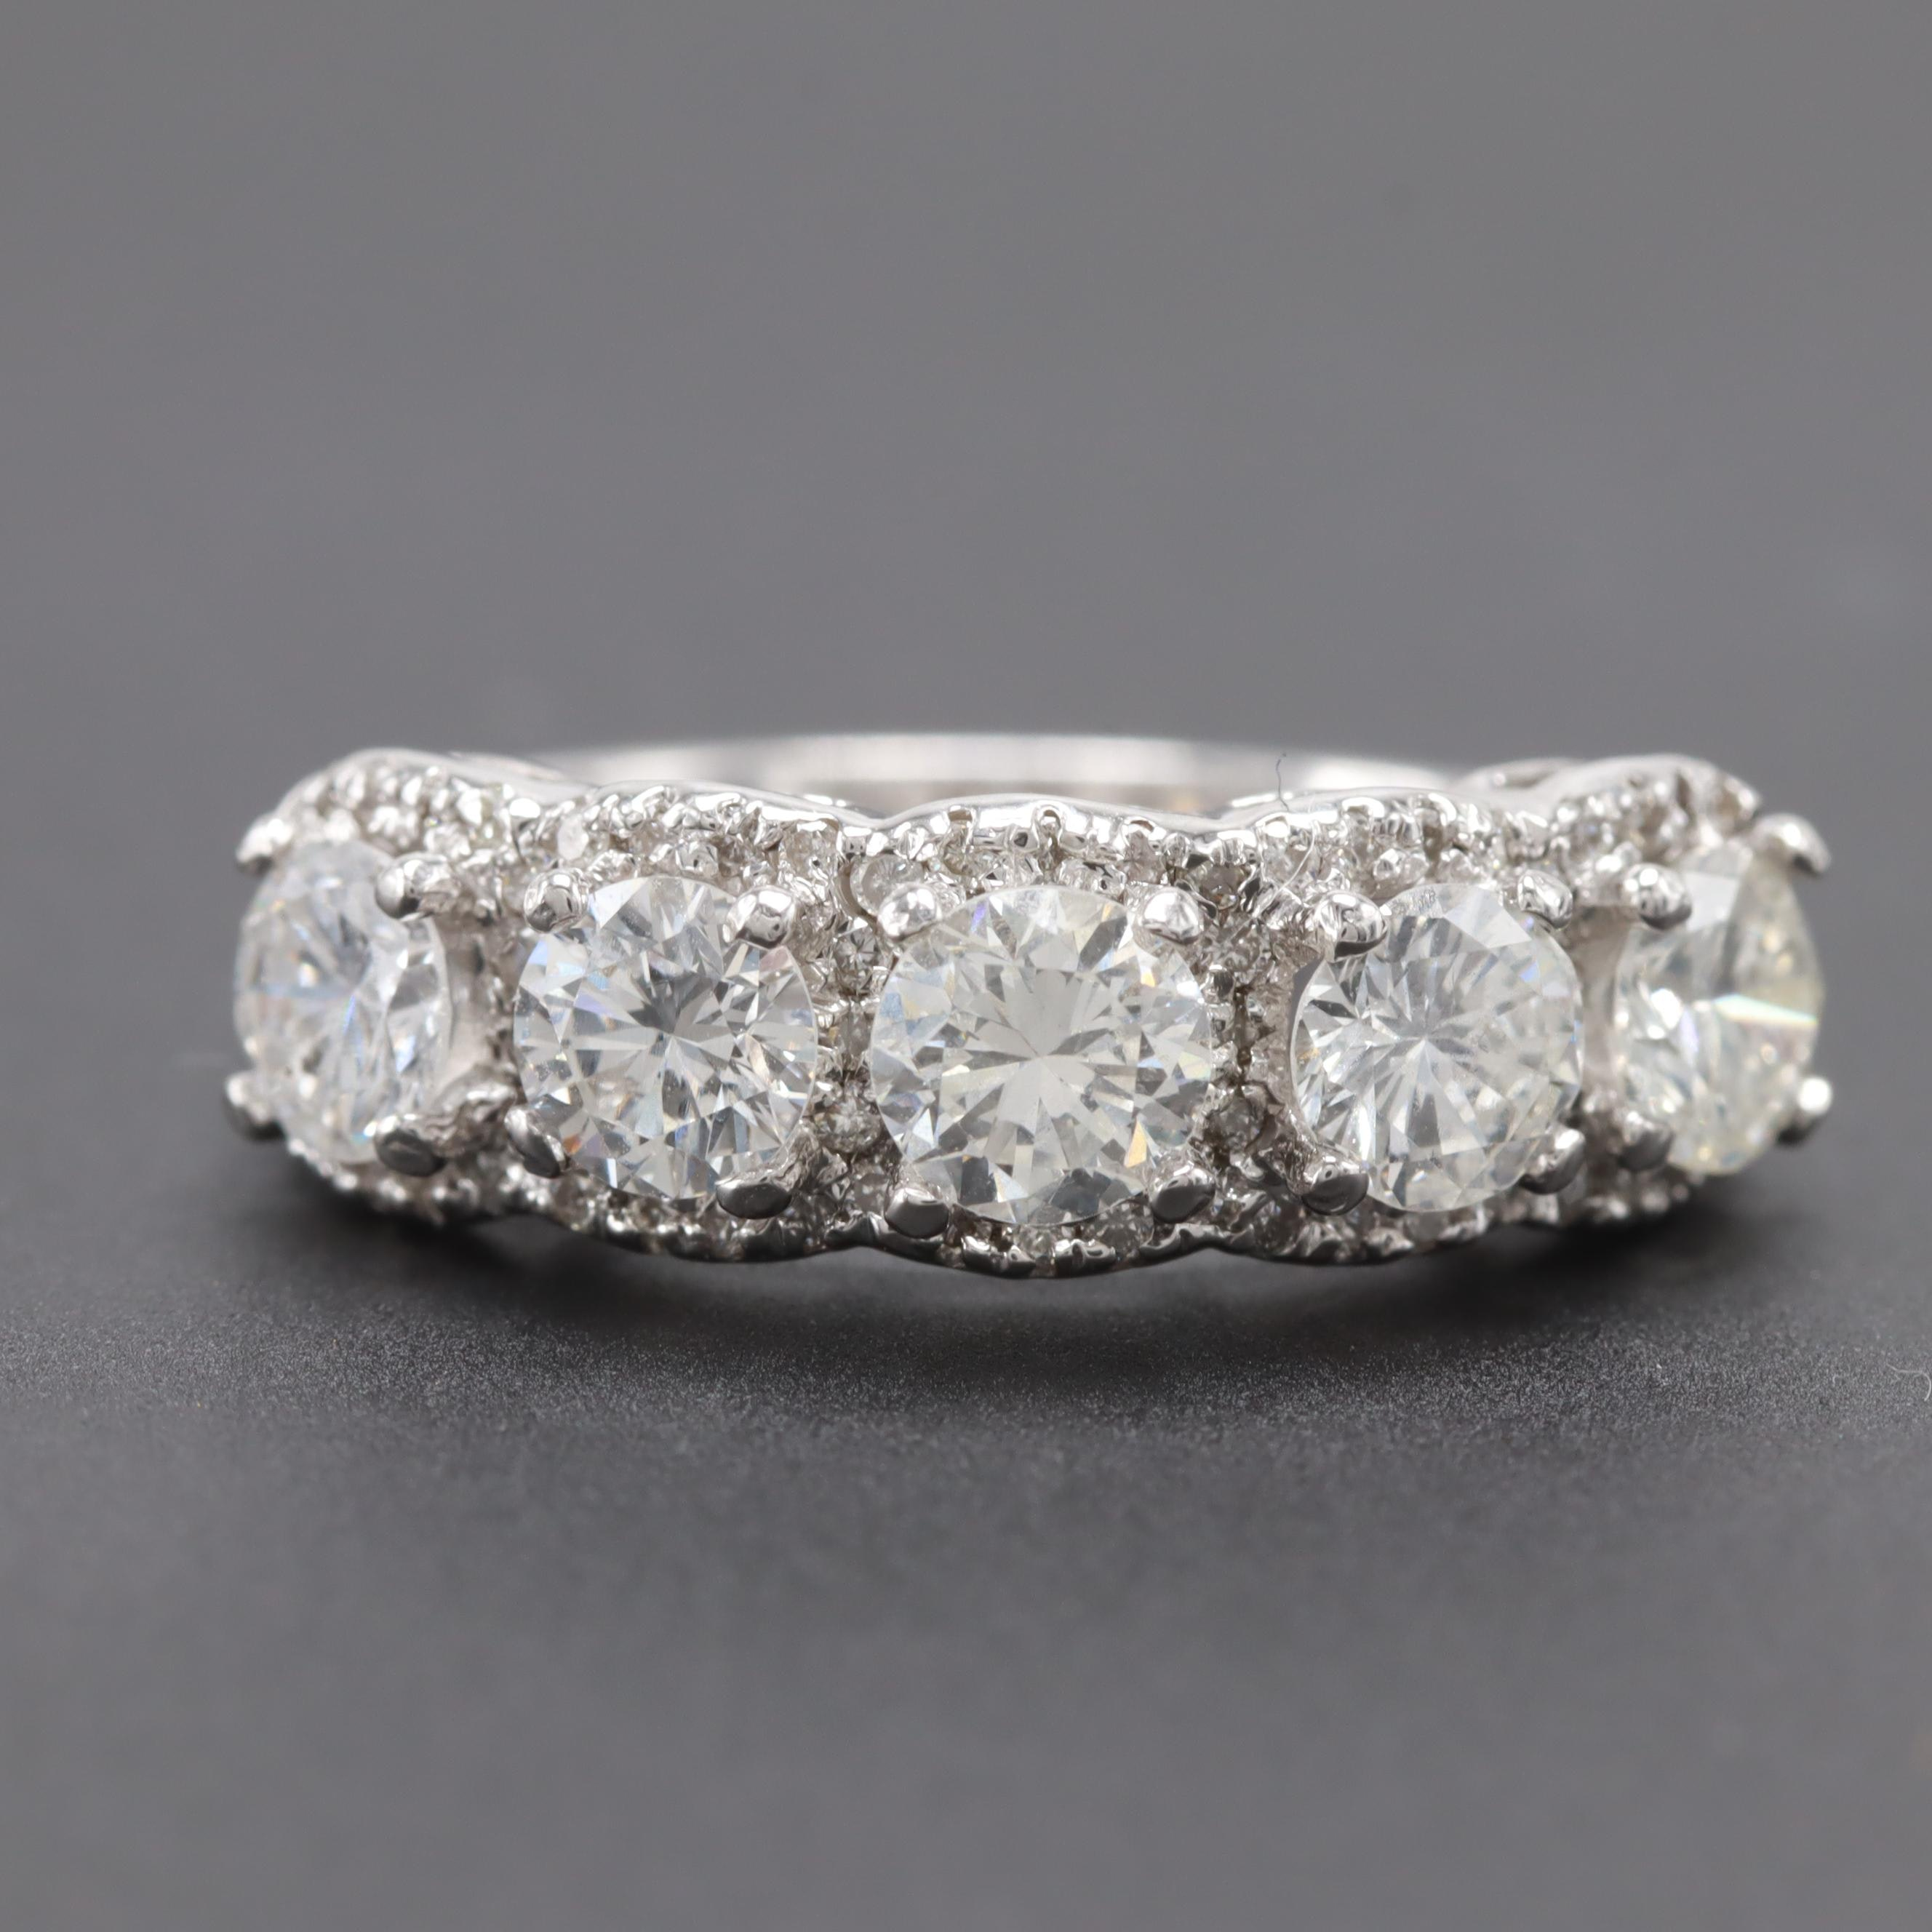 14K White Gold 2.25 CTW Diamond Ring